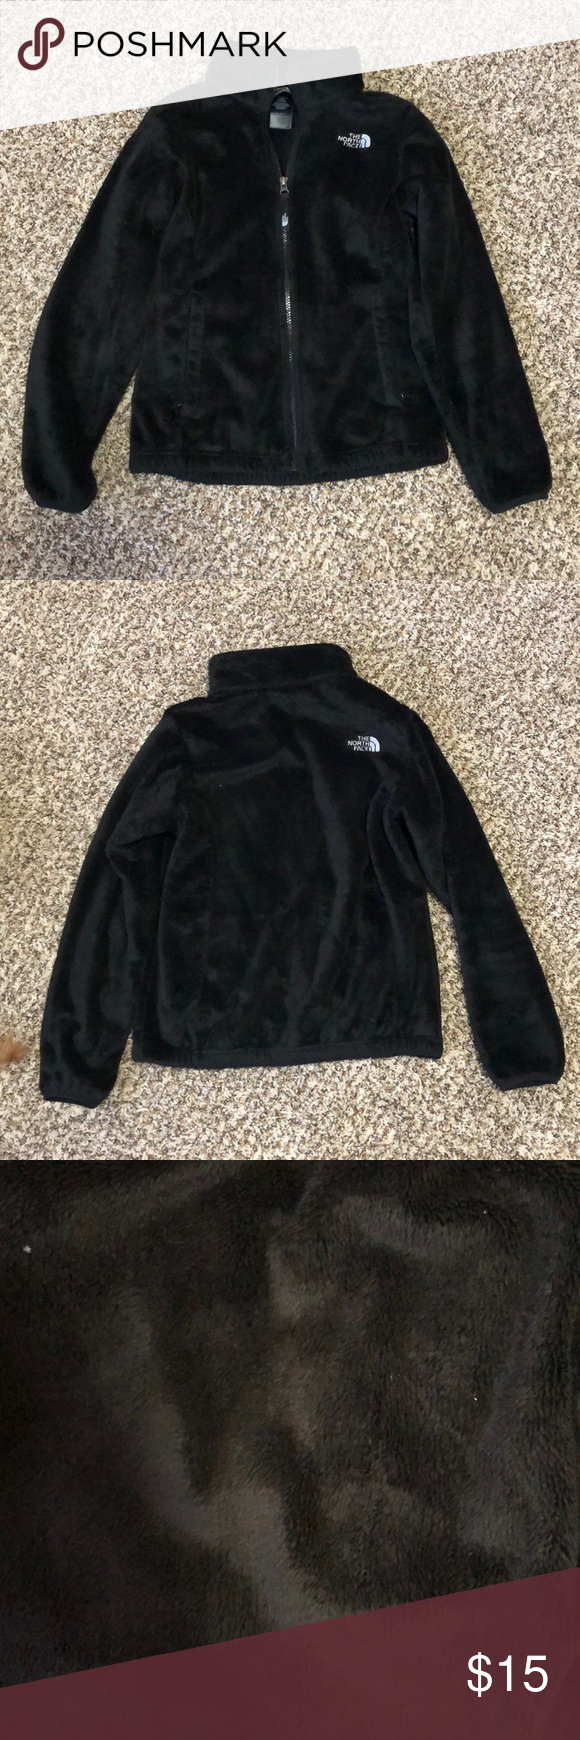 North Face Fuzzy Jacket Size Youth L Fuzzy Jacket Clothes Design Fashion [ 1740 x 580 Pixel ]